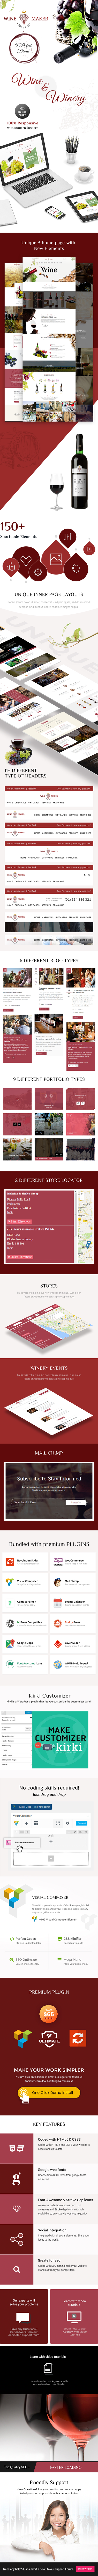 WordPress theme Wine Maker - Multi Purpose Wine Website Theme (Retail)